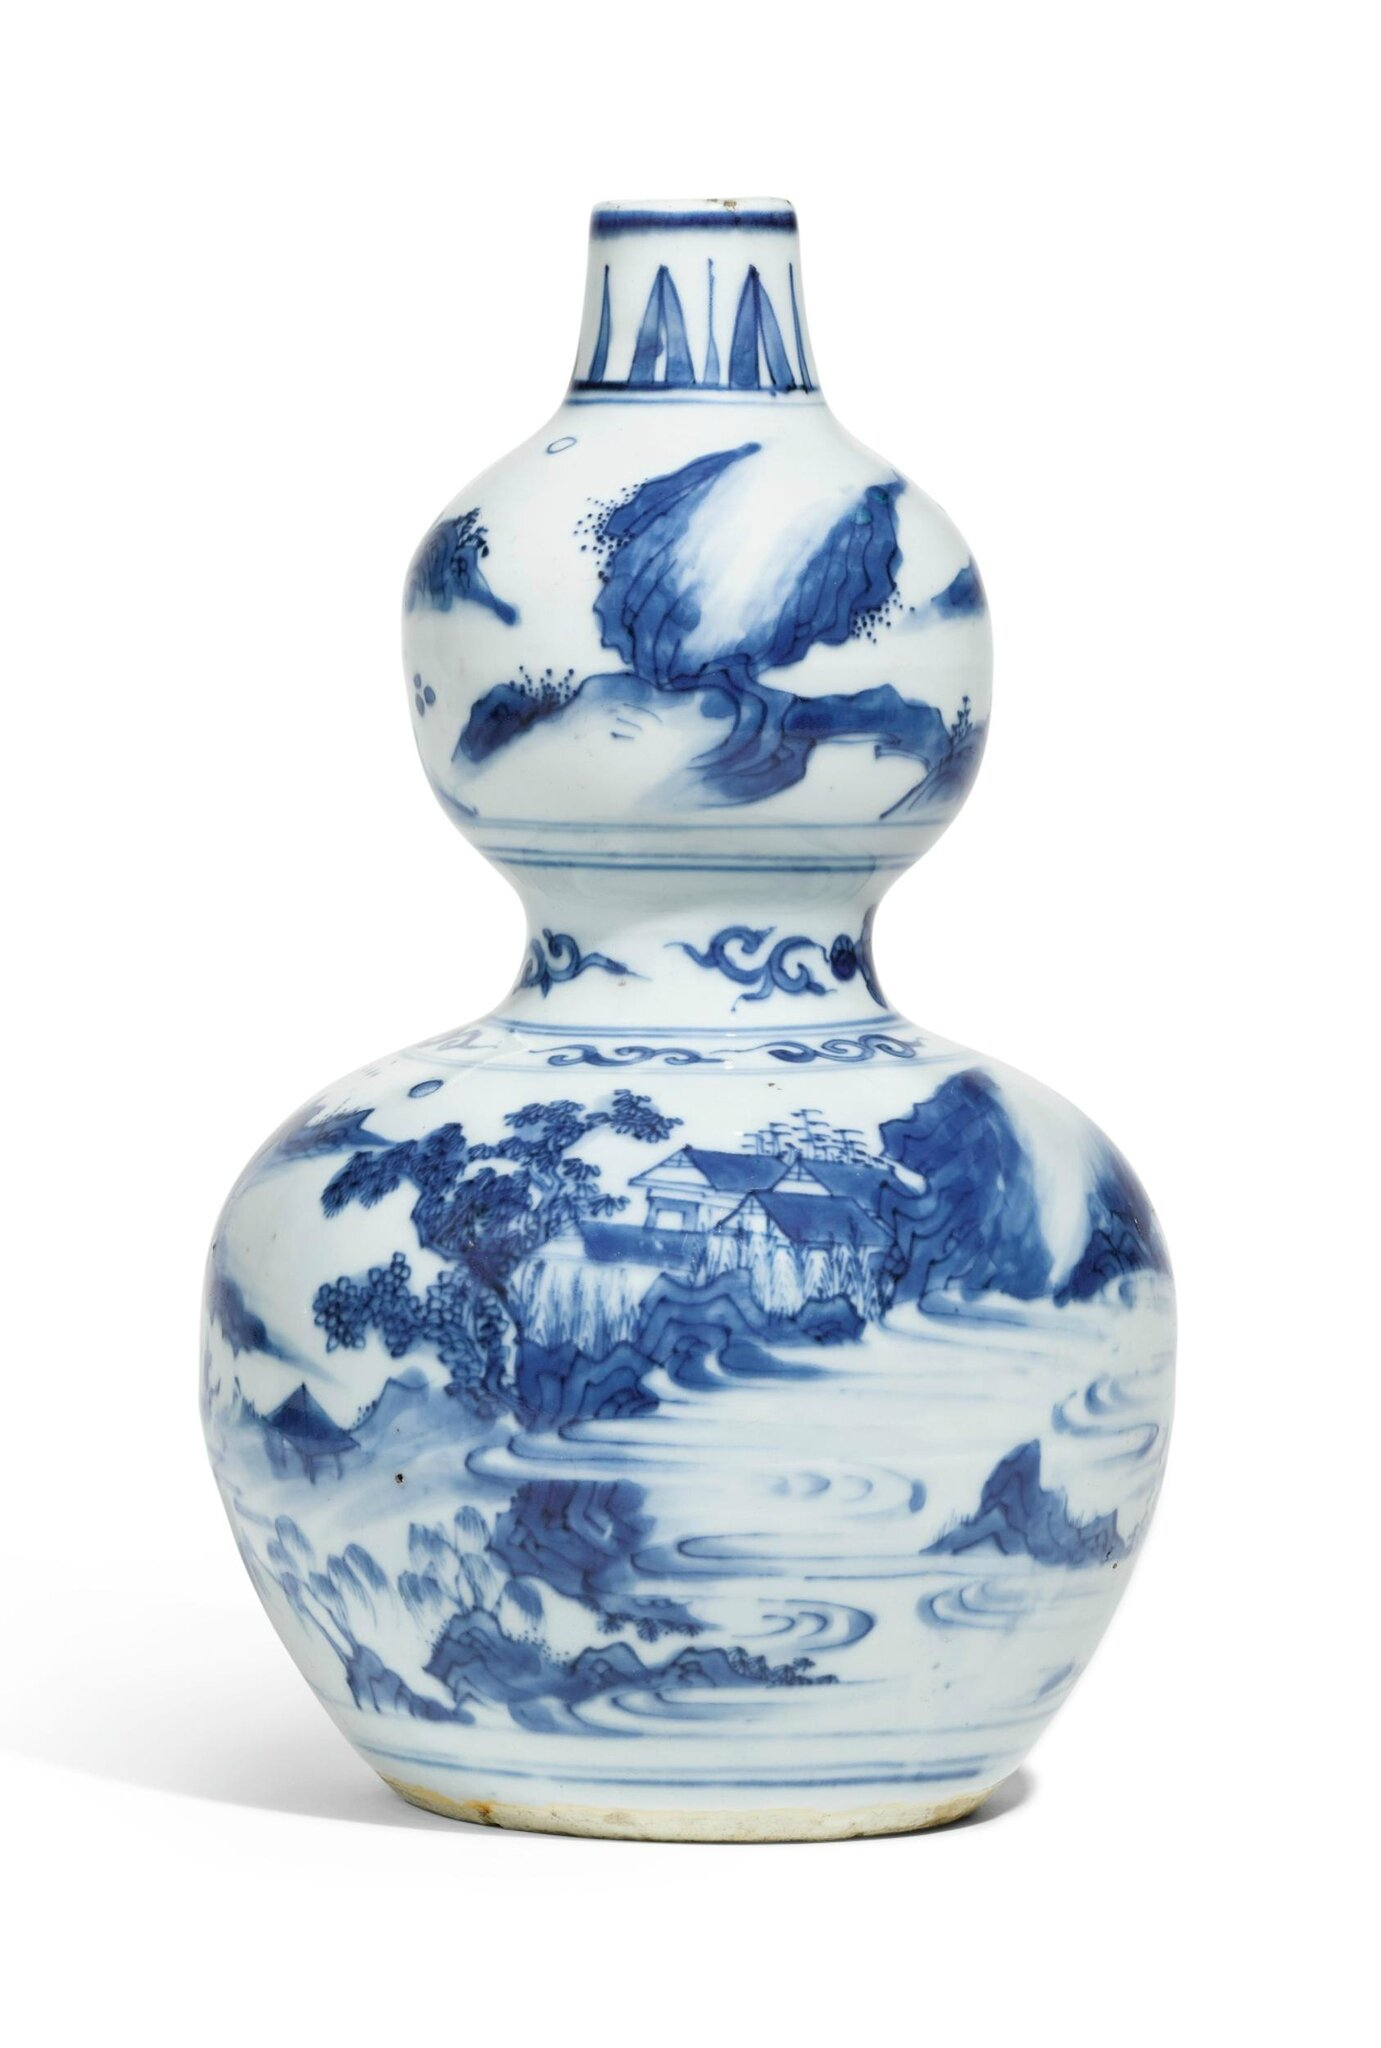 A blue and white double-gourd vase, 17th century